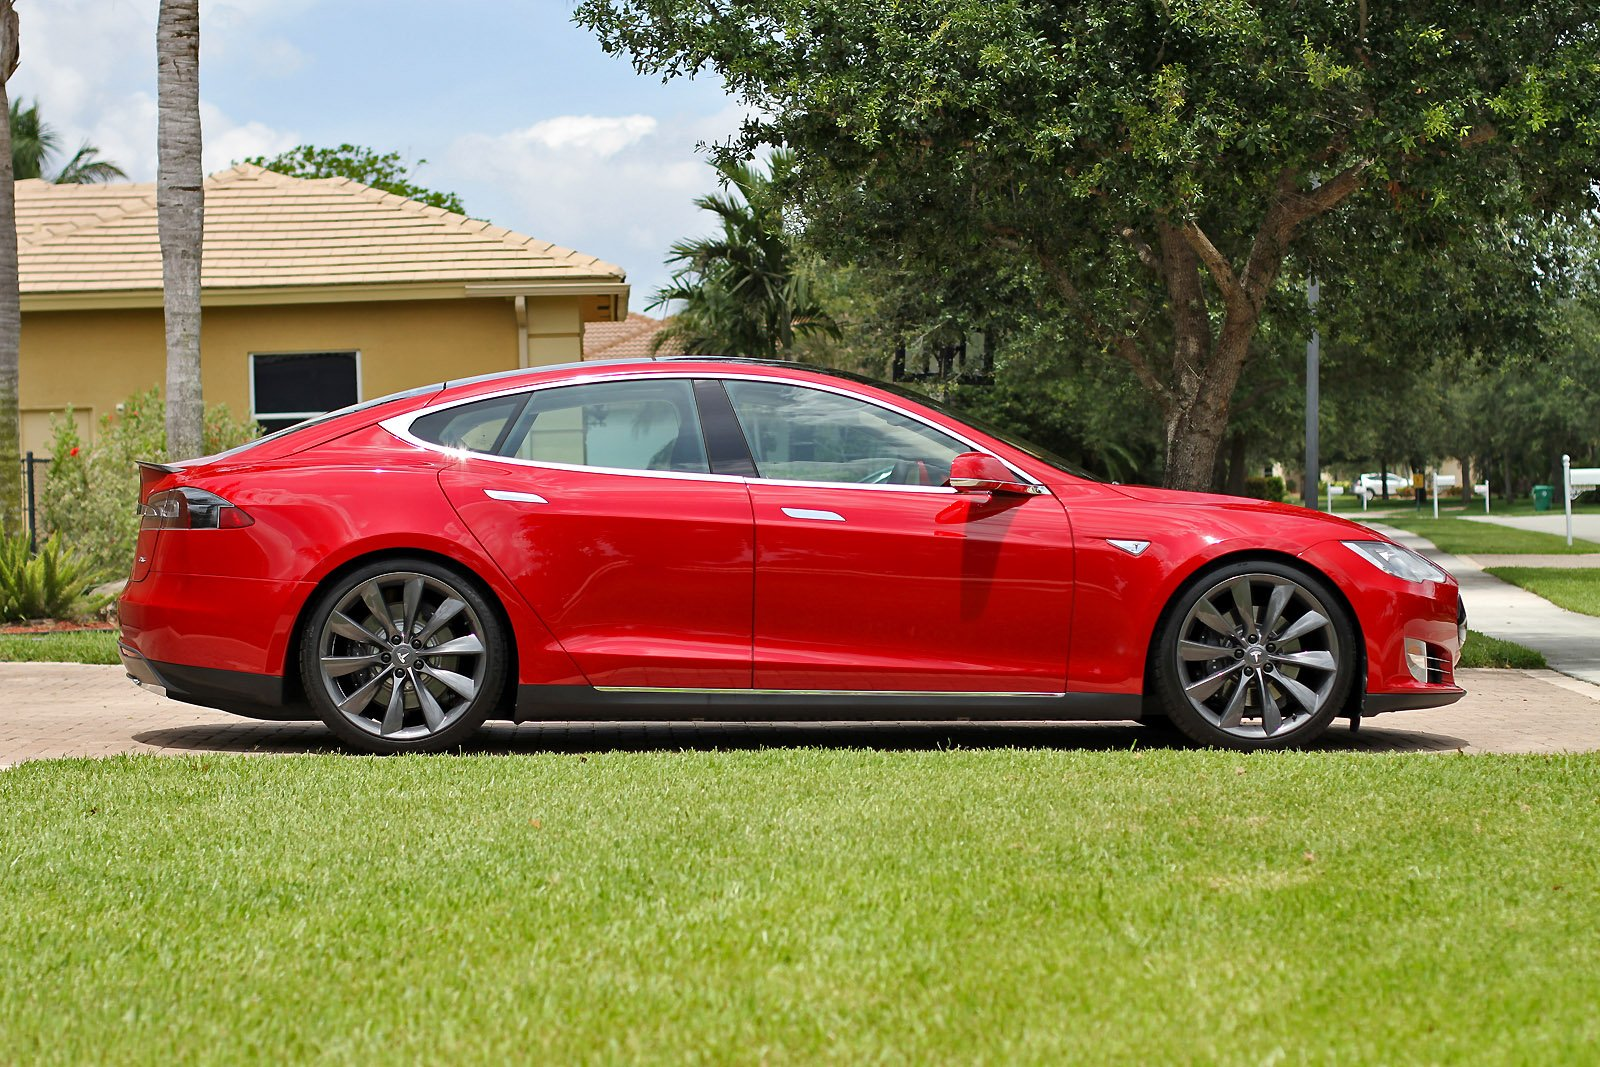 2013-tesla-model-s-p85-multi-coat-red-003.jpg